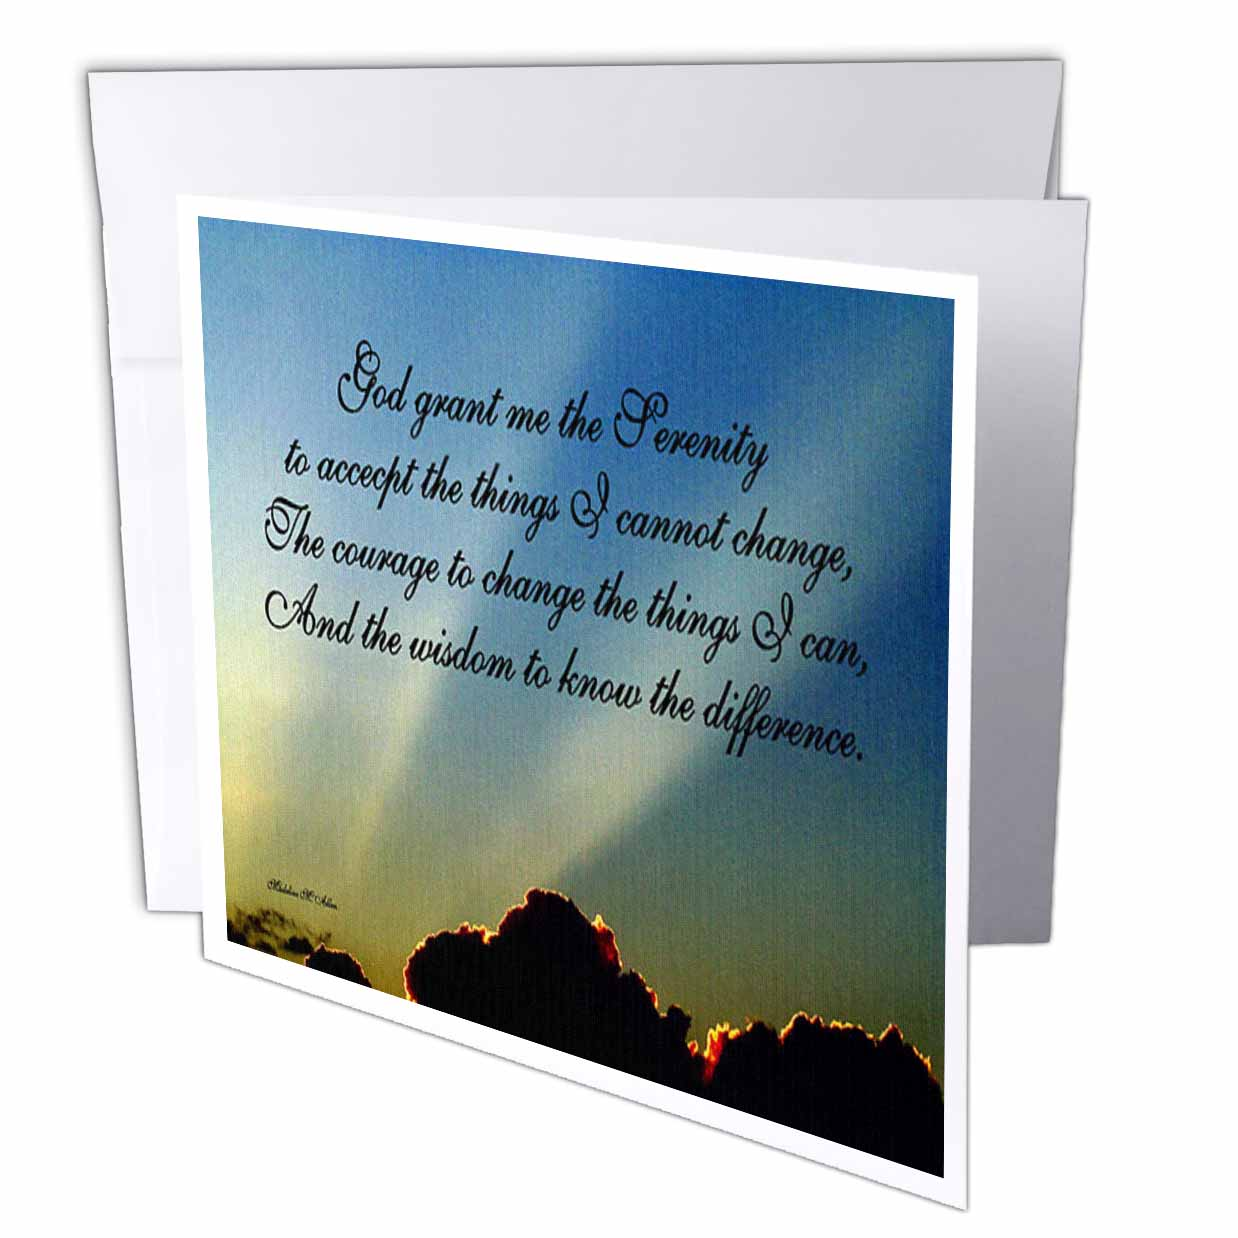 3dRose The Serenity Prayer, Greeting Cards, 6 x 6 inches, set of 12